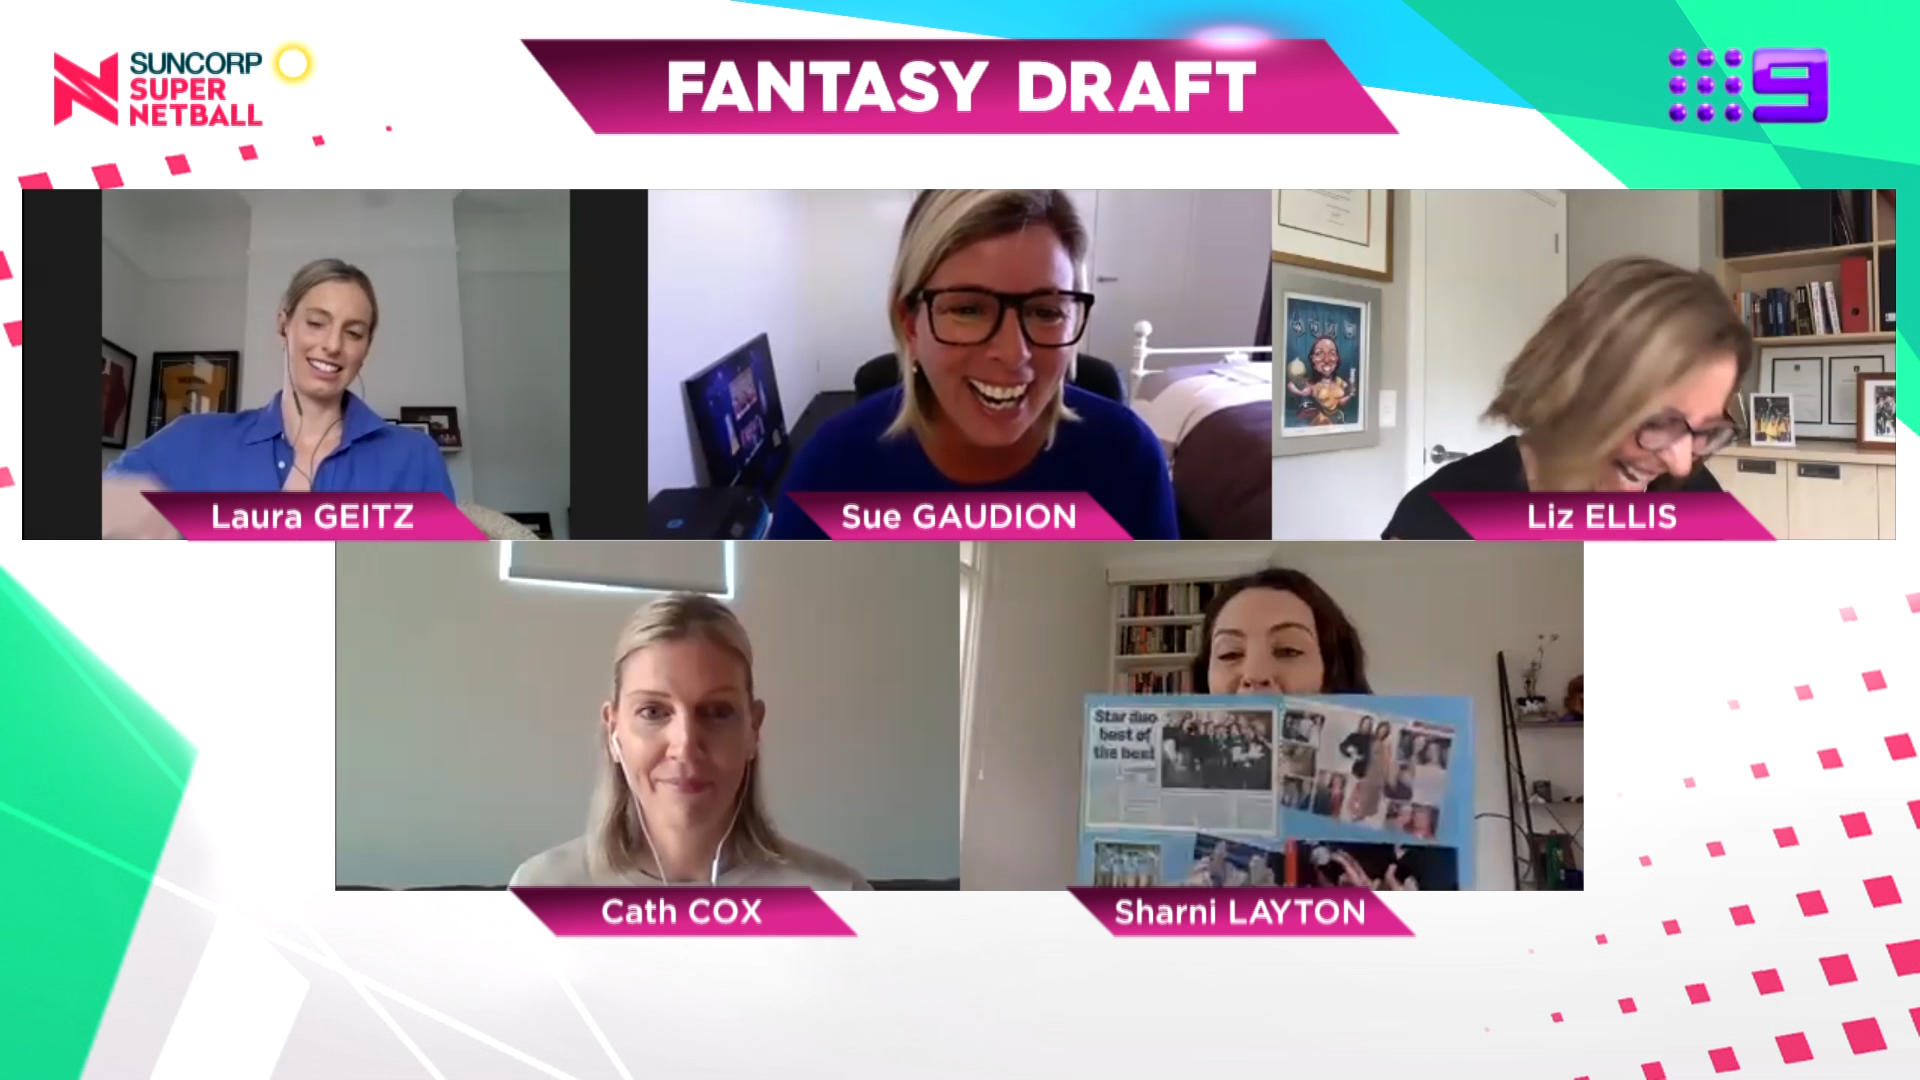 Picks 6-8: 2020 Super Netball Fantasy Draft